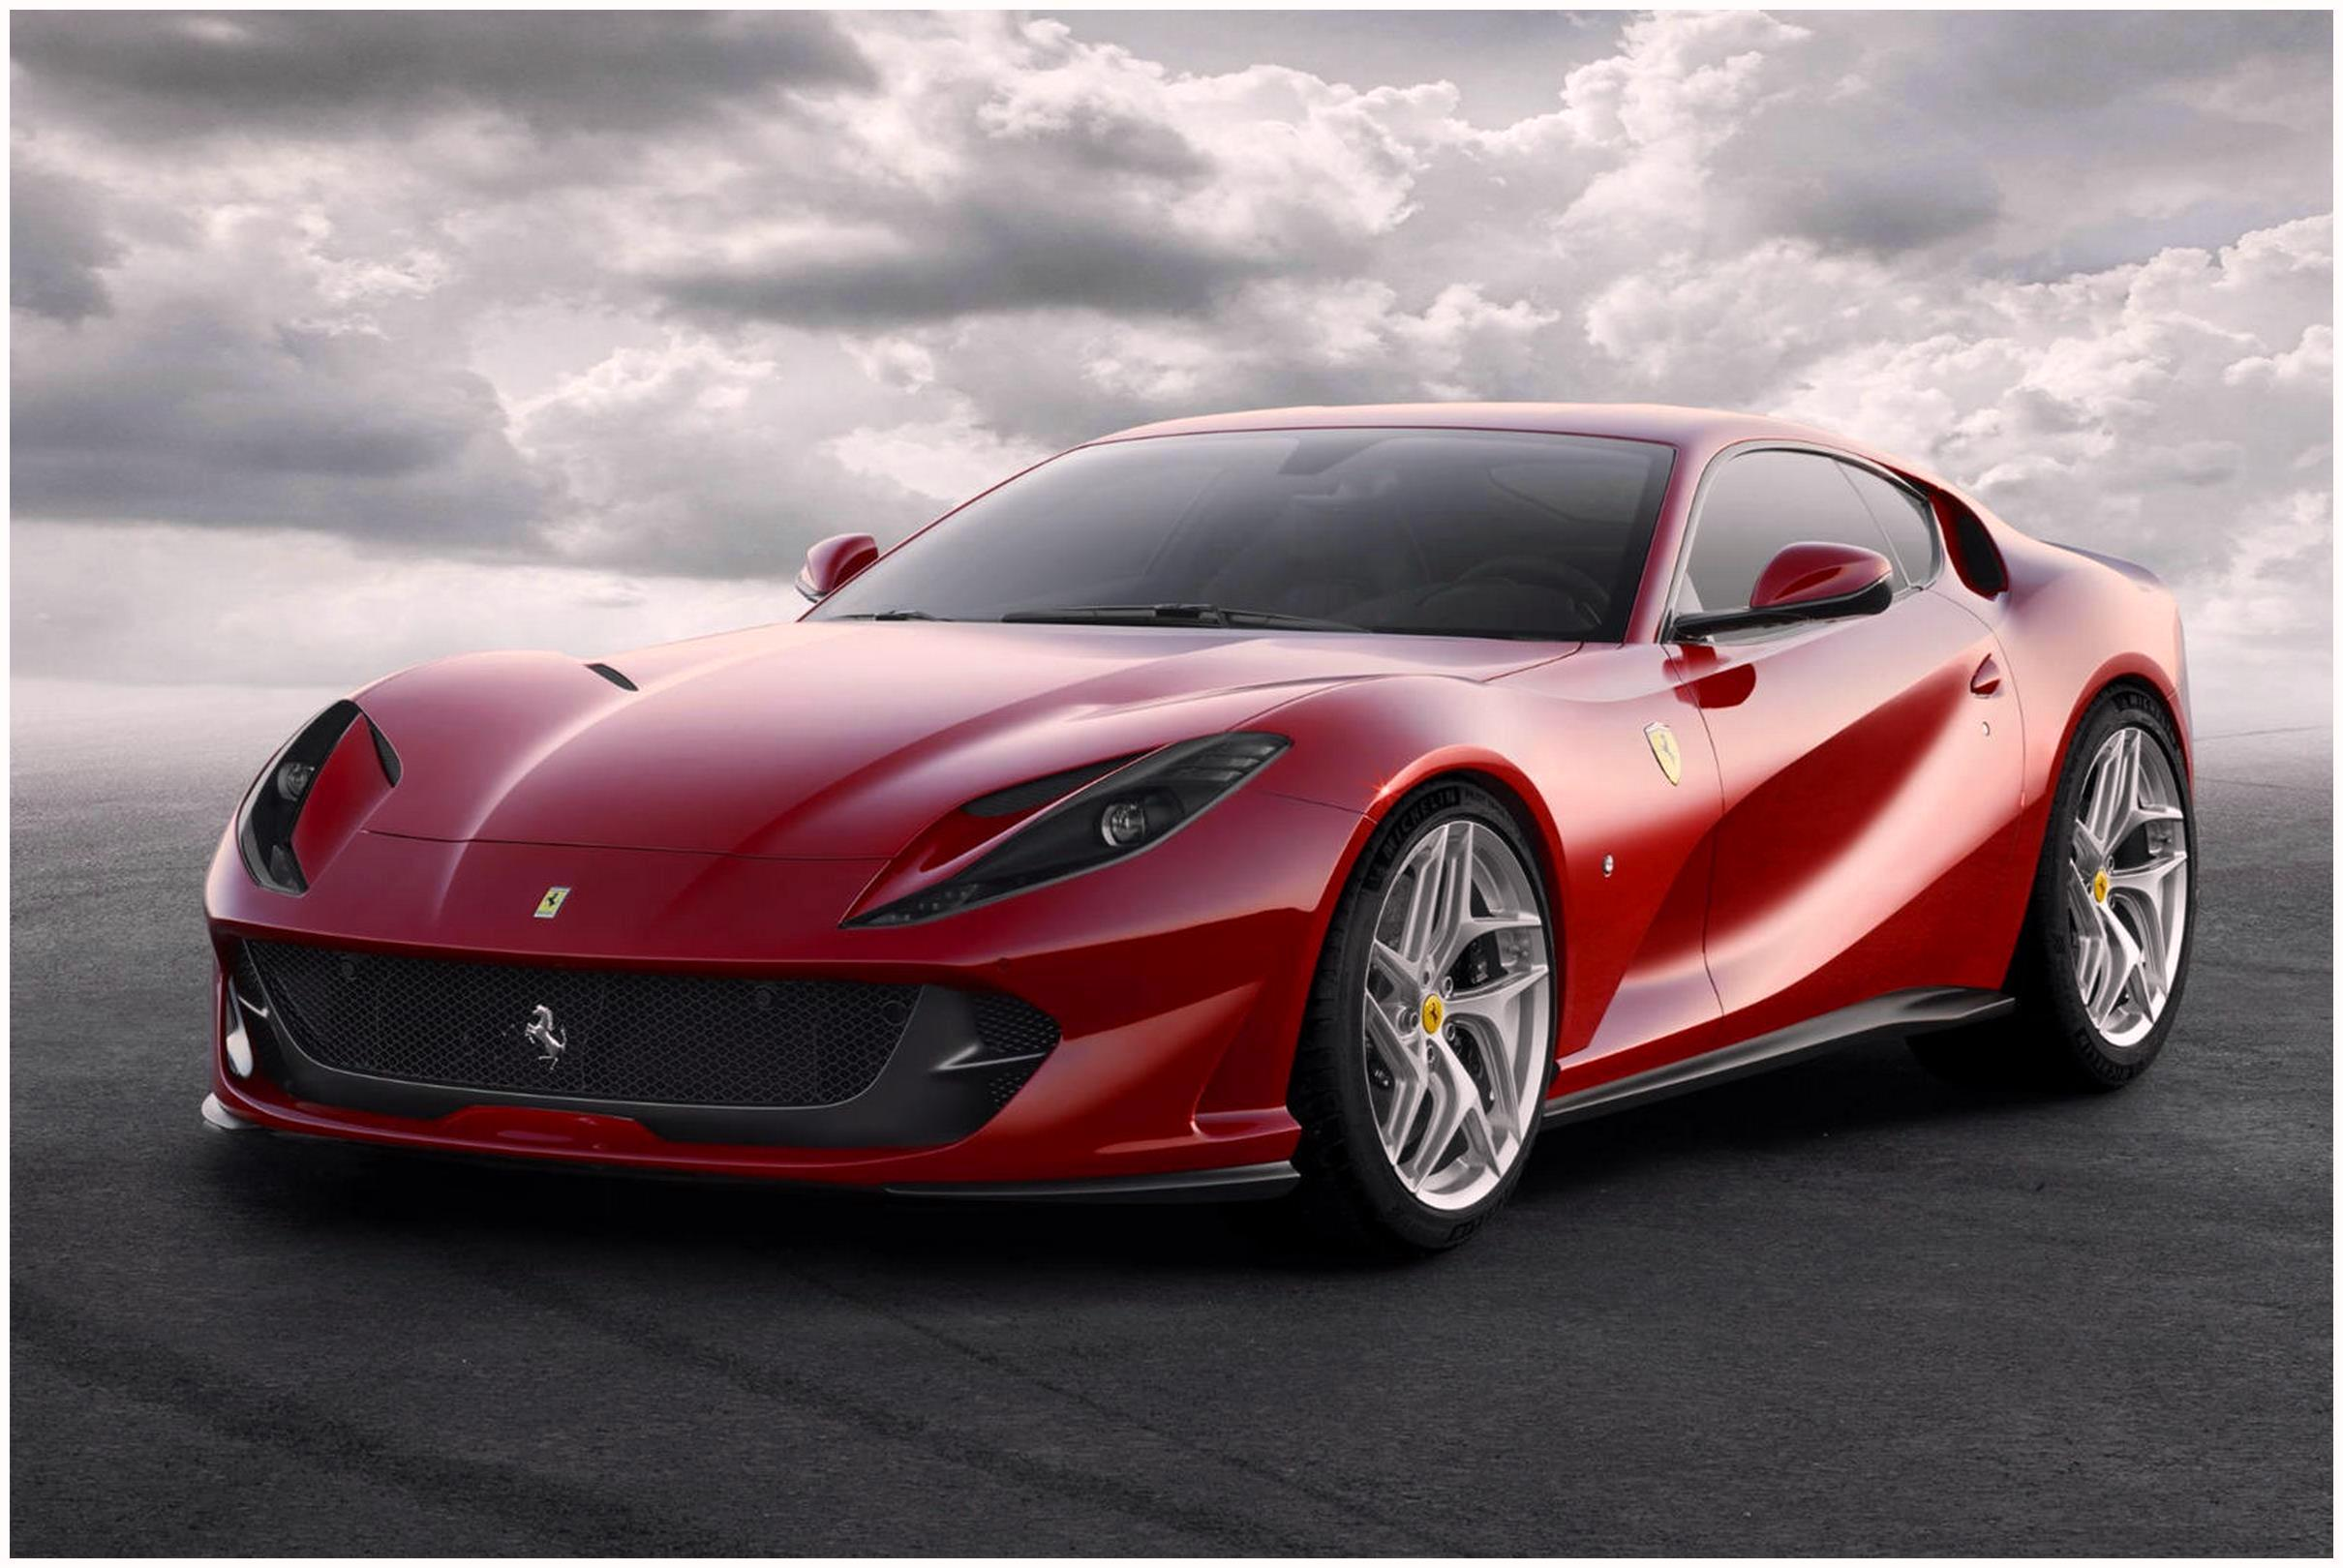 Ferrari 812 Superfast Coupe HD wallpapers 4k images download free